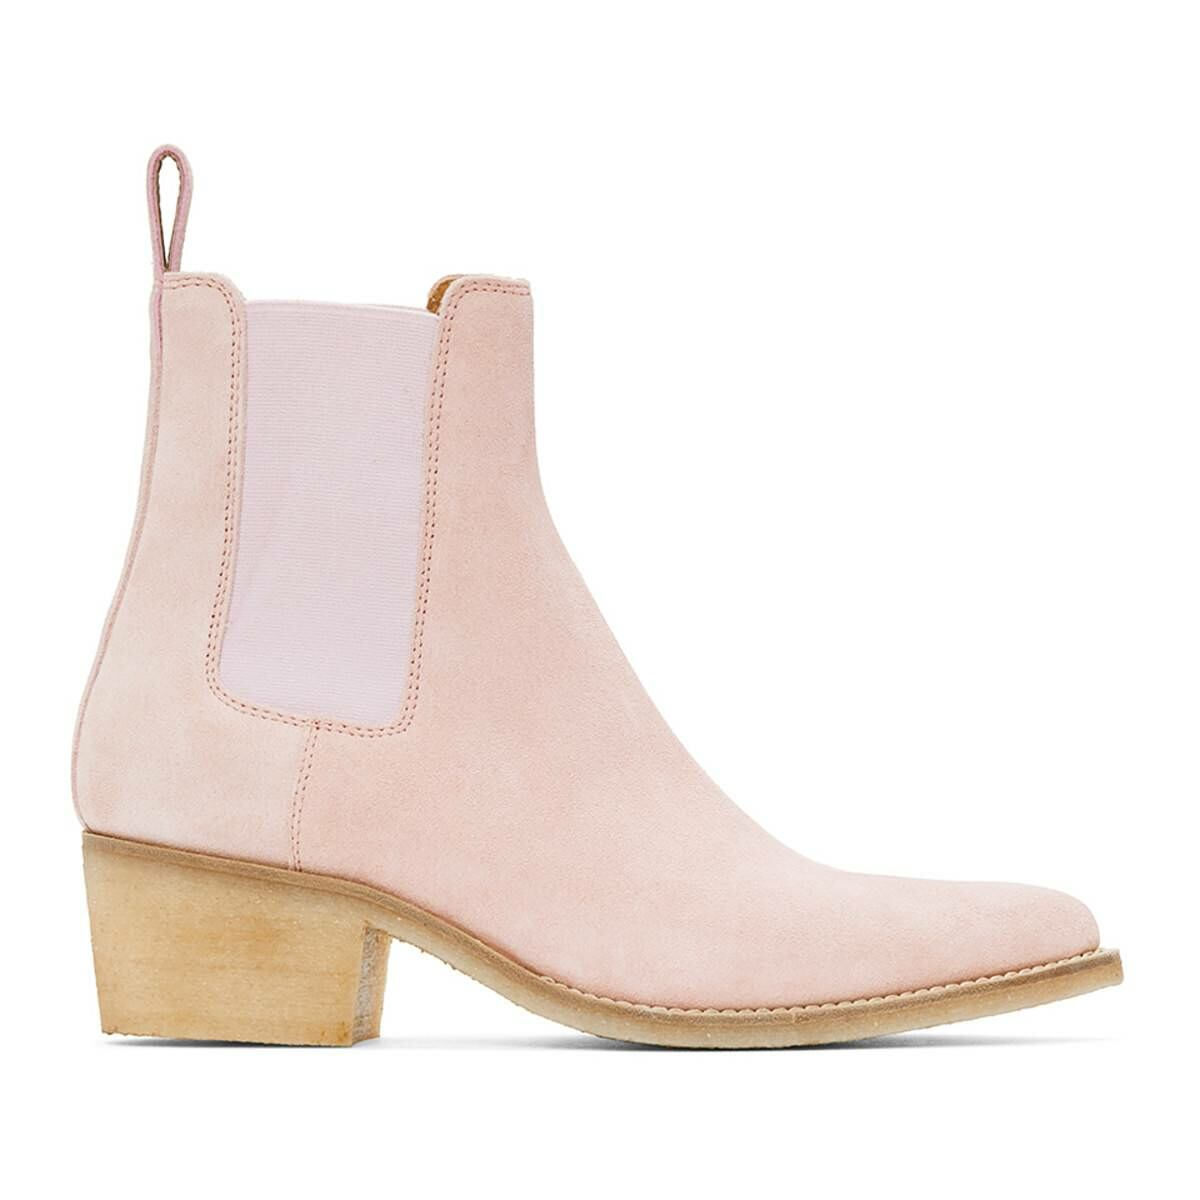 Amiri Pink Suede Pointy Toe Chelsea Boots Ssense USA MEN Men SHOES Mens BOOTS